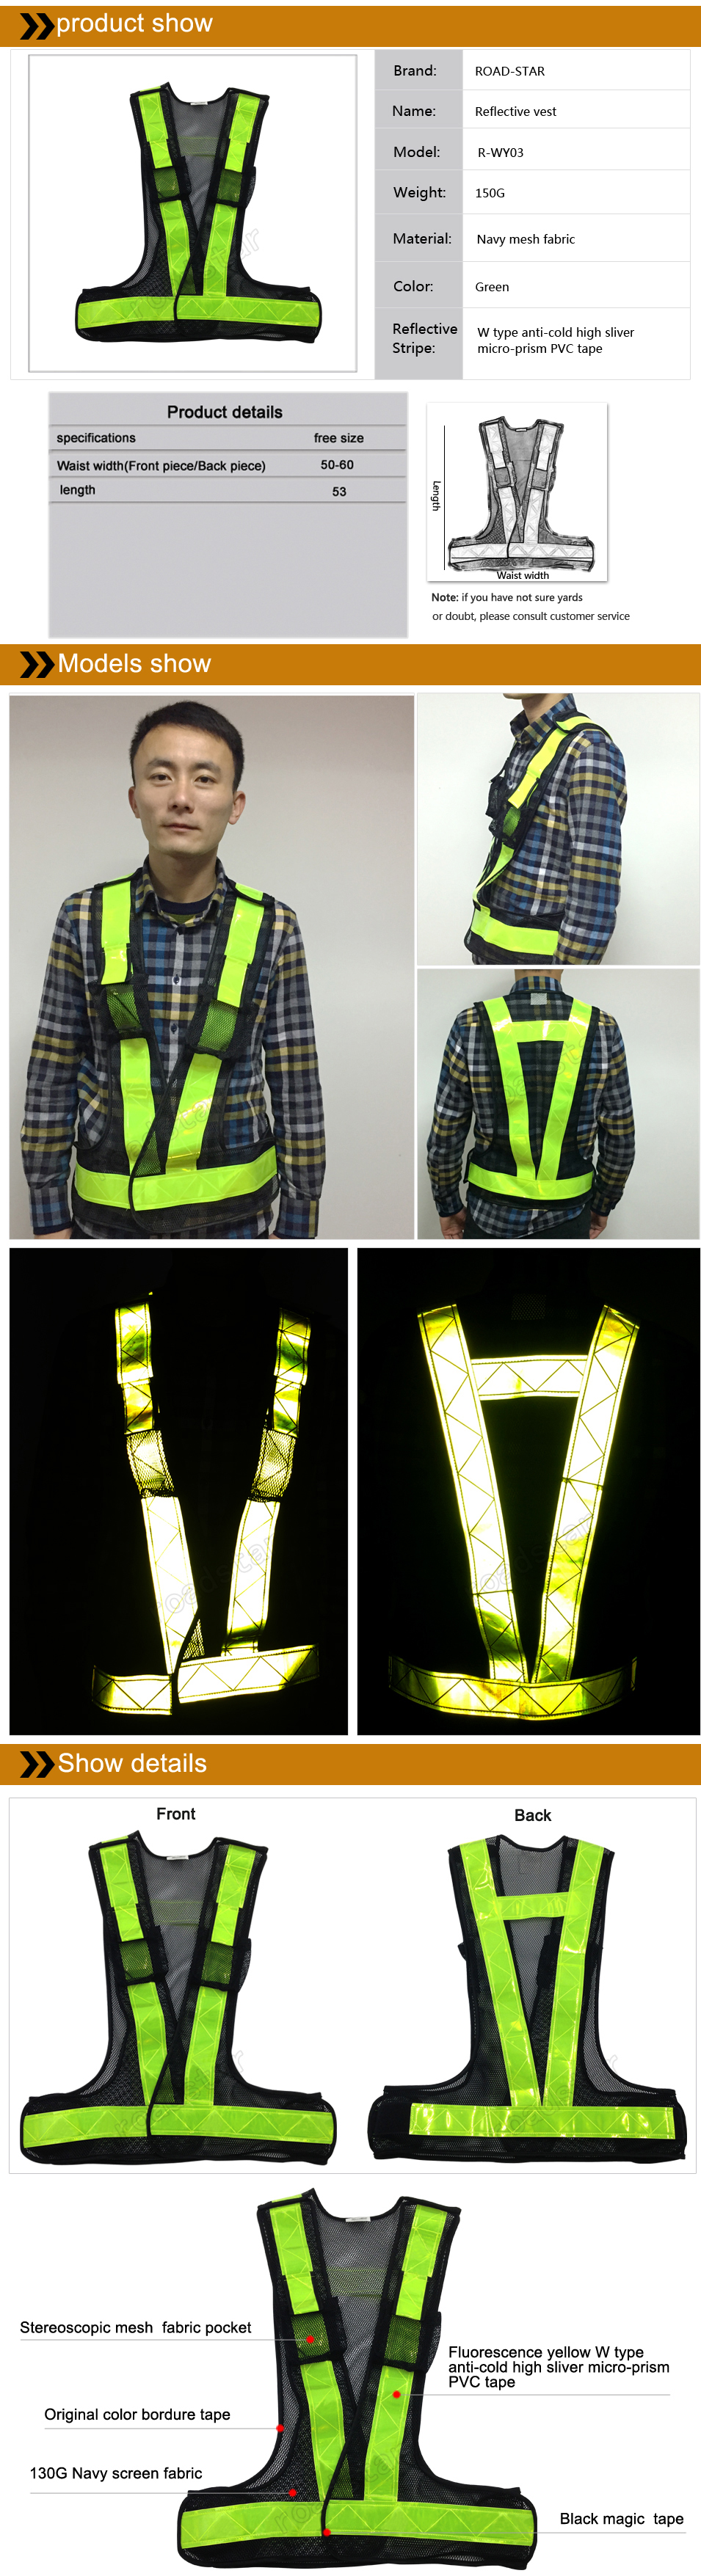 Objective Spardwear En471 High Visibility Security Vest Reflective Safety Mesh Vest Reflective Clothing Safety Clothing Free Shipping Comfortable And Easy To Wear Safety Clothing